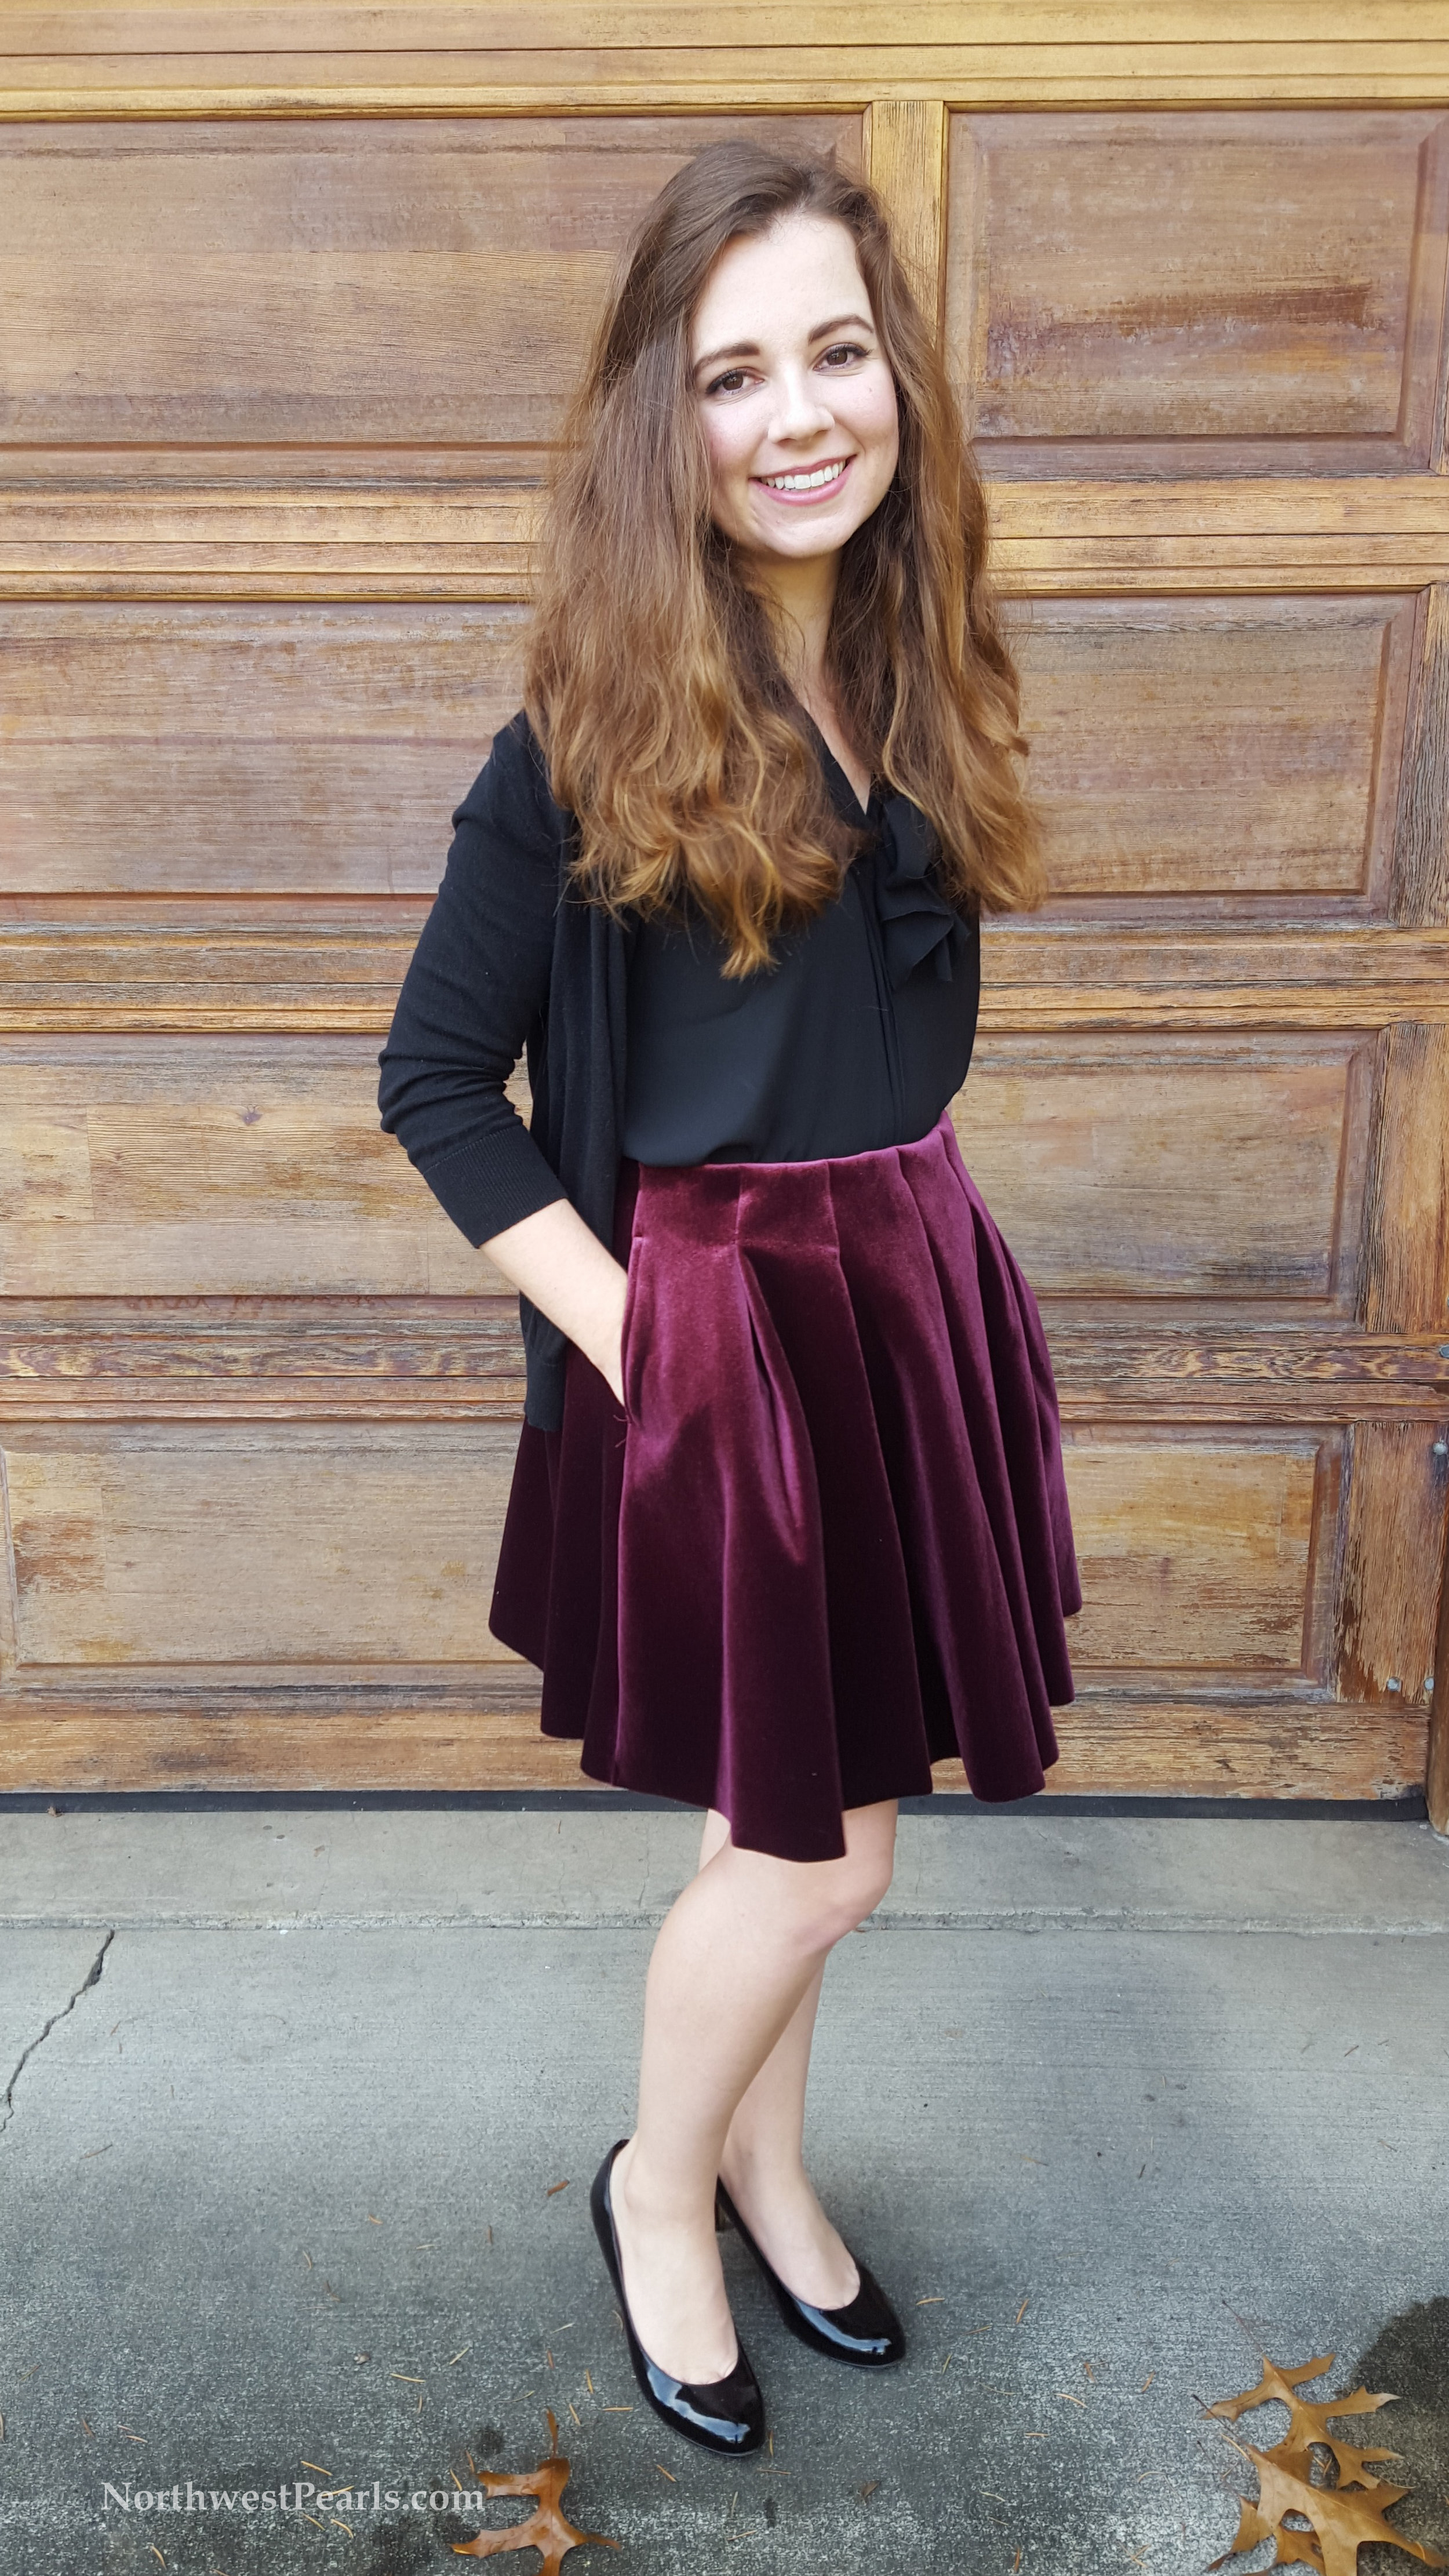 Northwest Pearls: Holiday OOTD